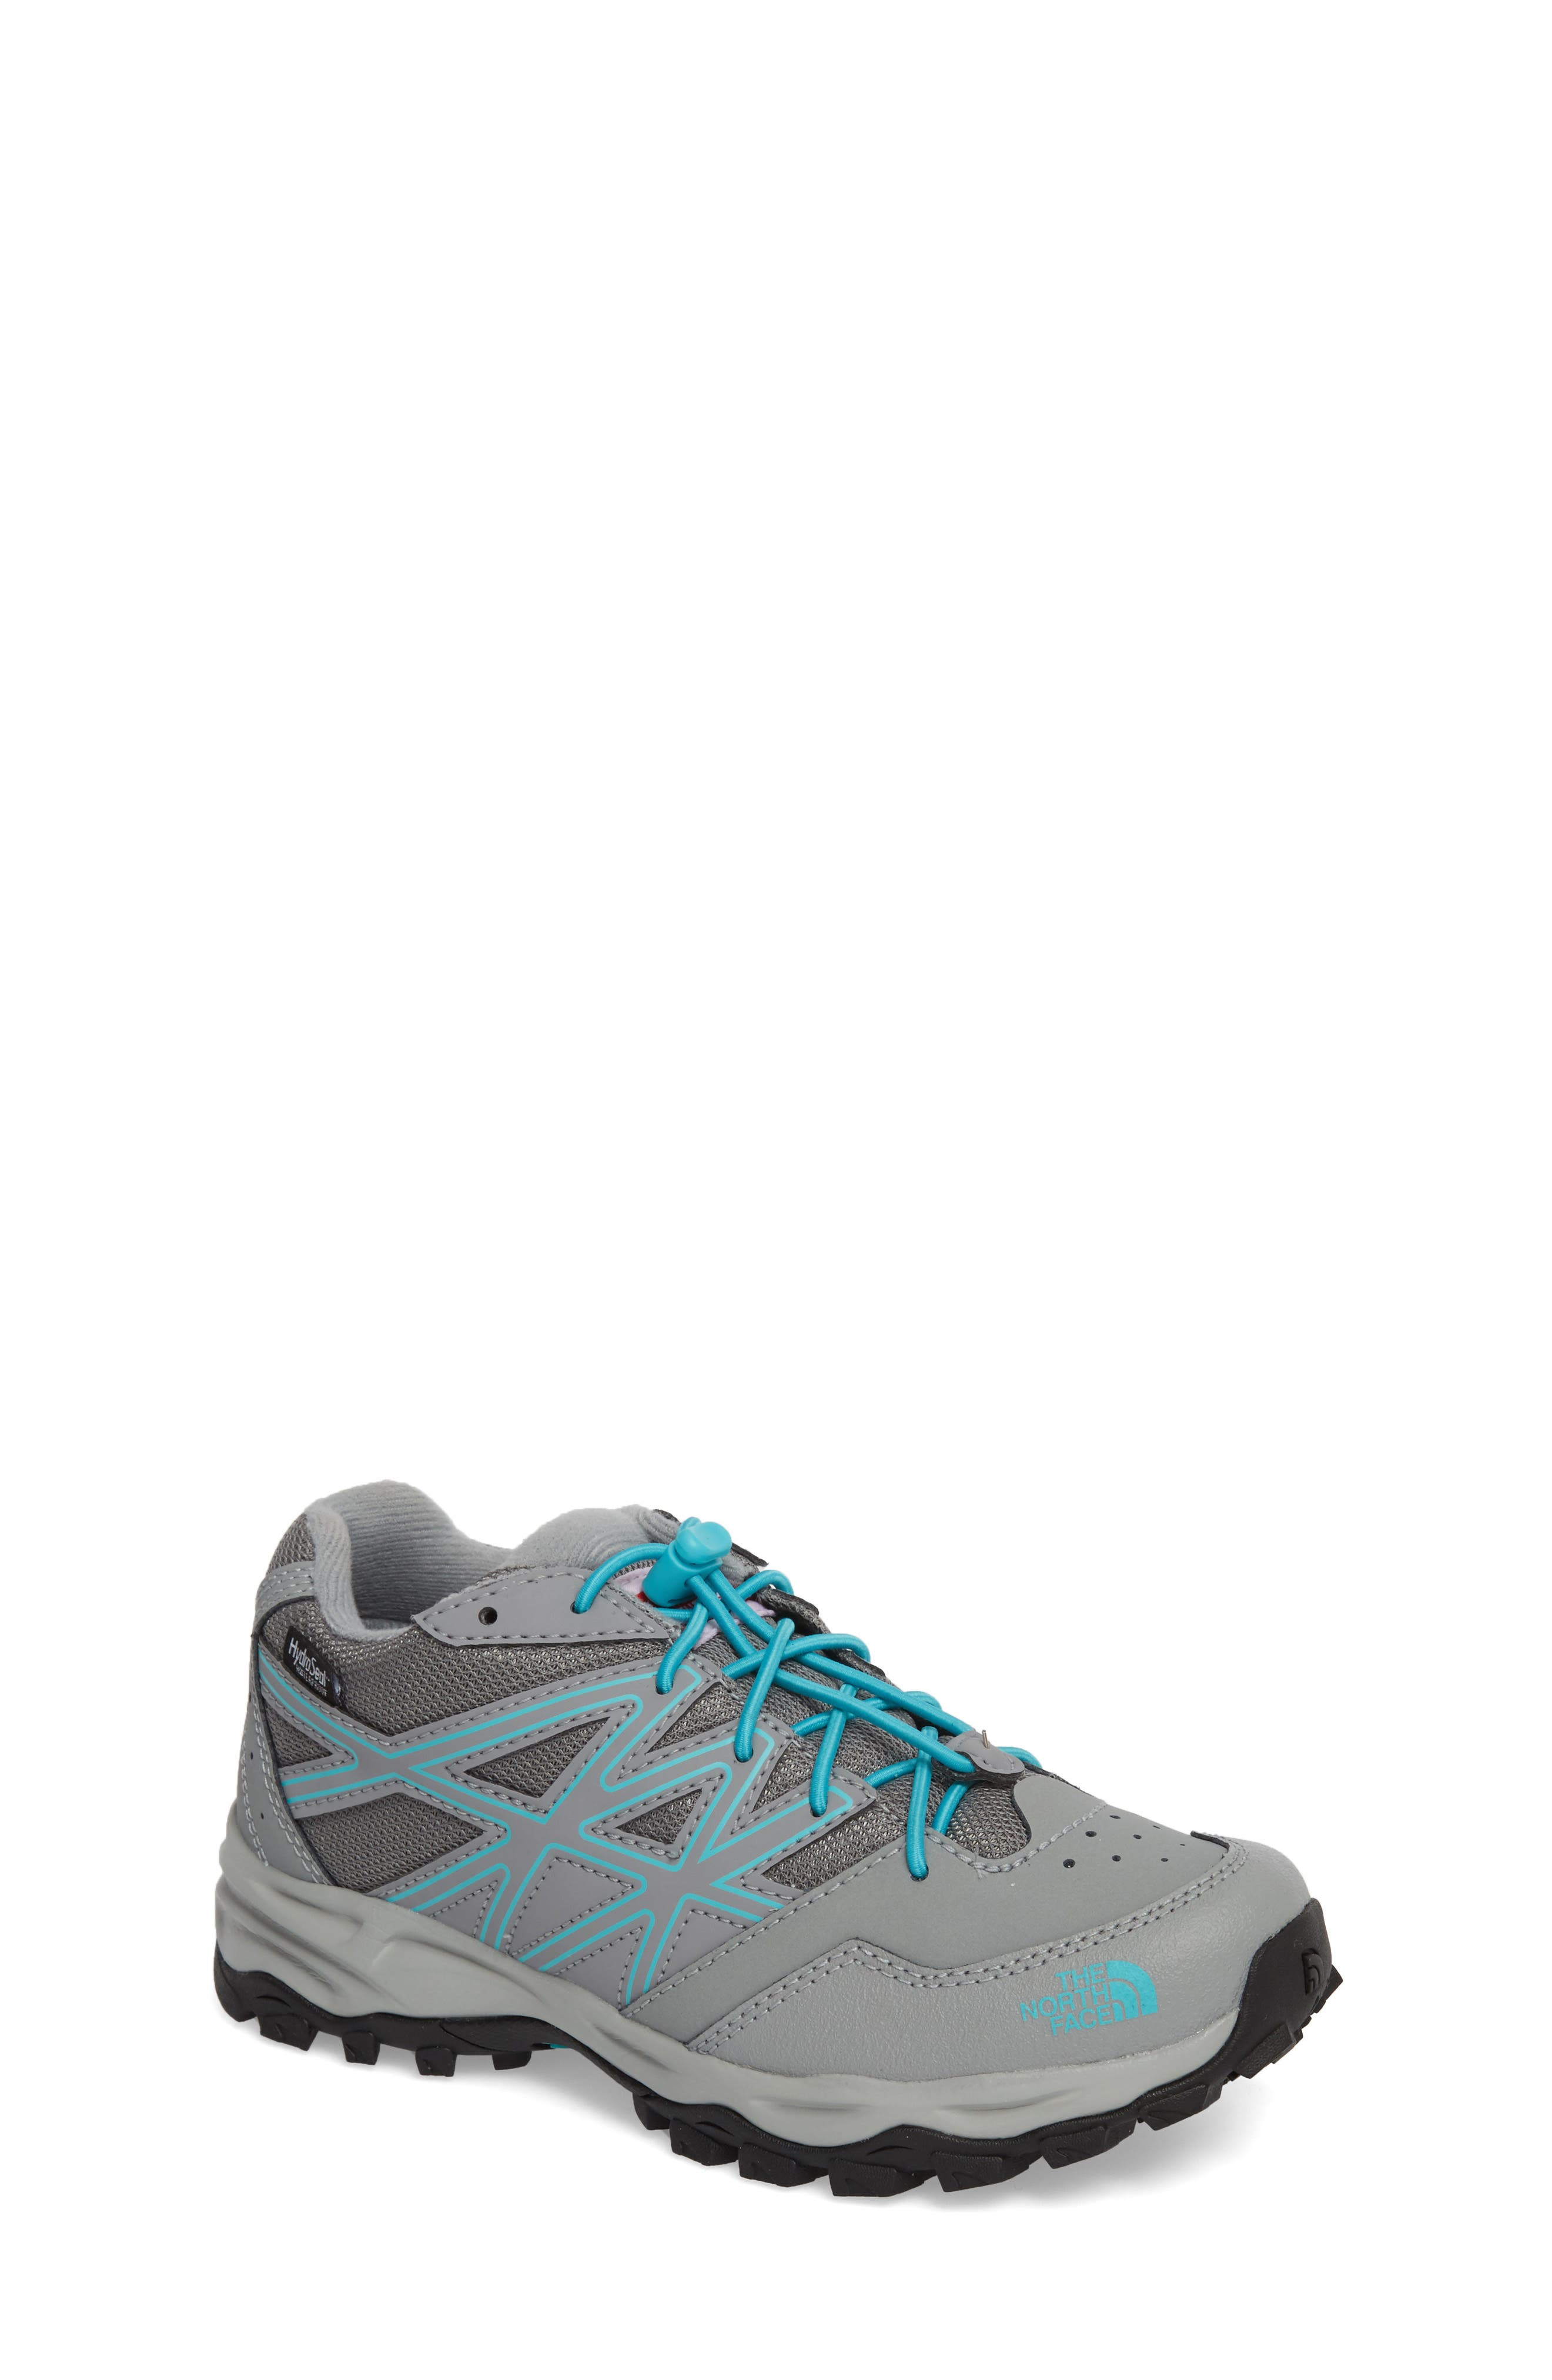 Hedgehog Hiker Boot,                             Main thumbnail 1, color,                             Griffin Grey/ Blue Curacao